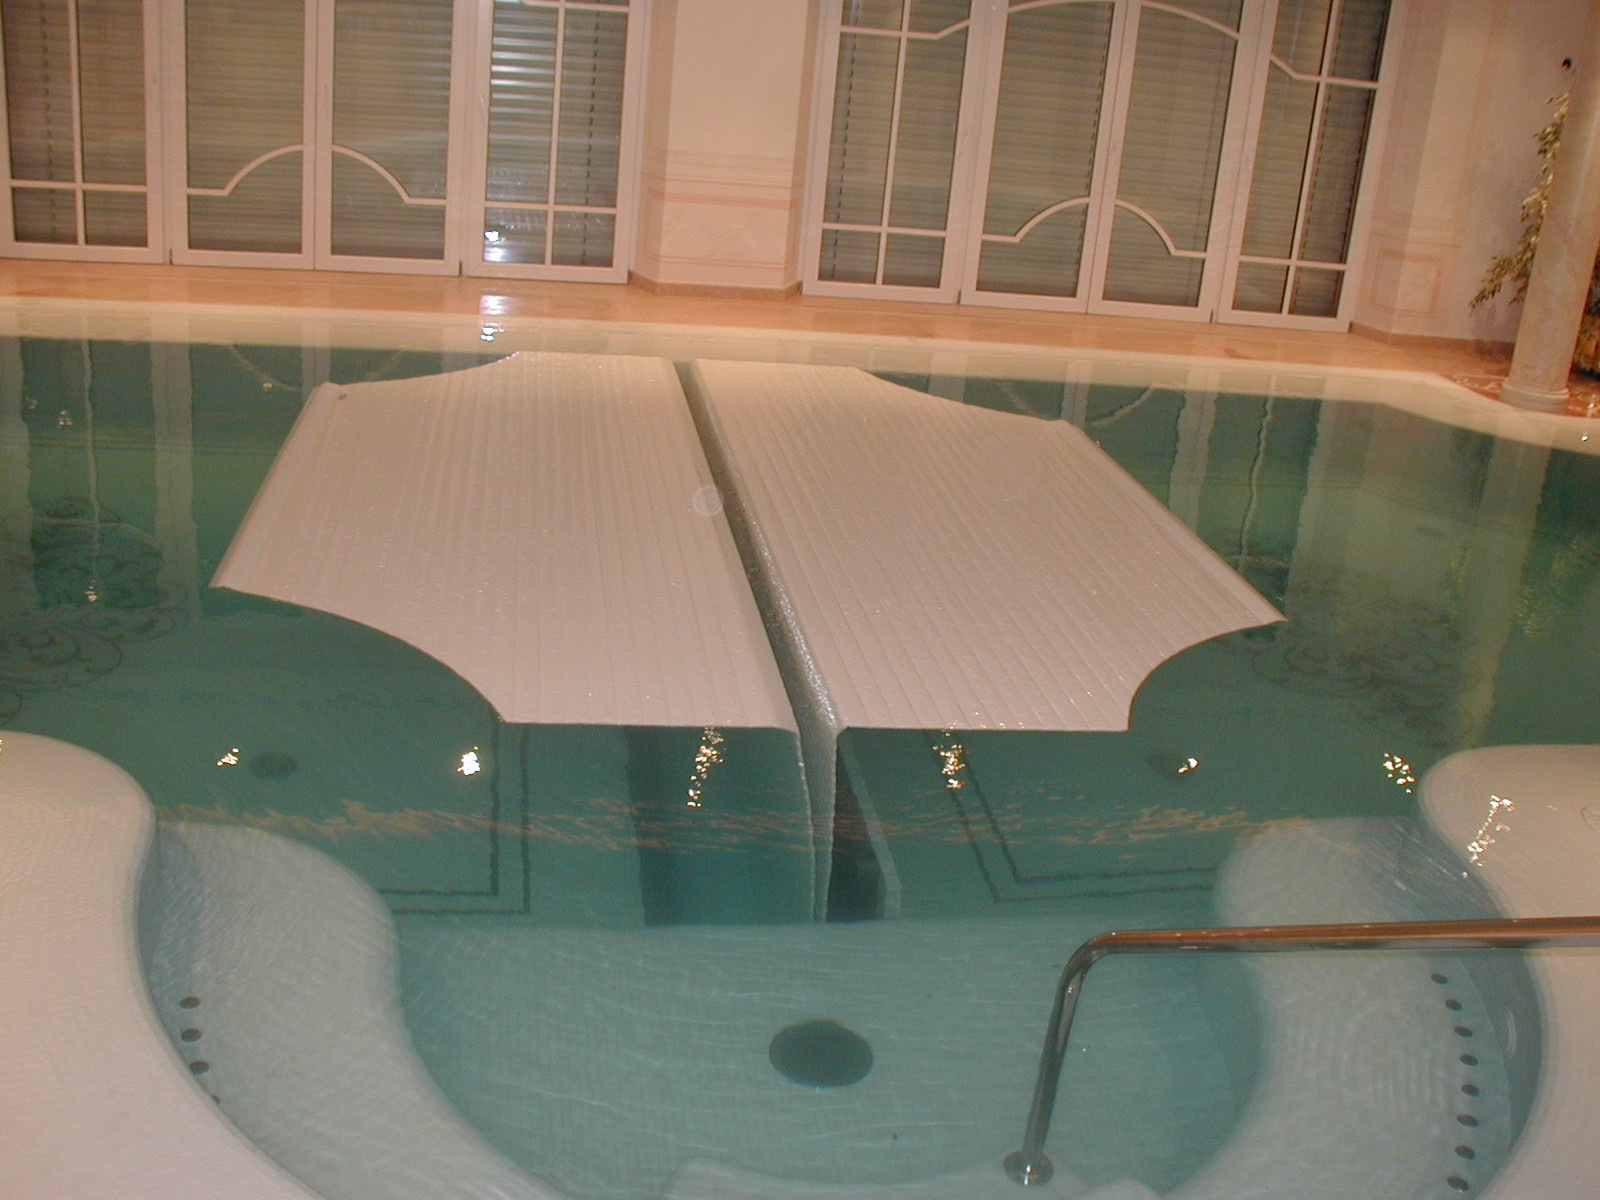 indoor rigid slatted automatic pool cover covertech grando IBS8 2